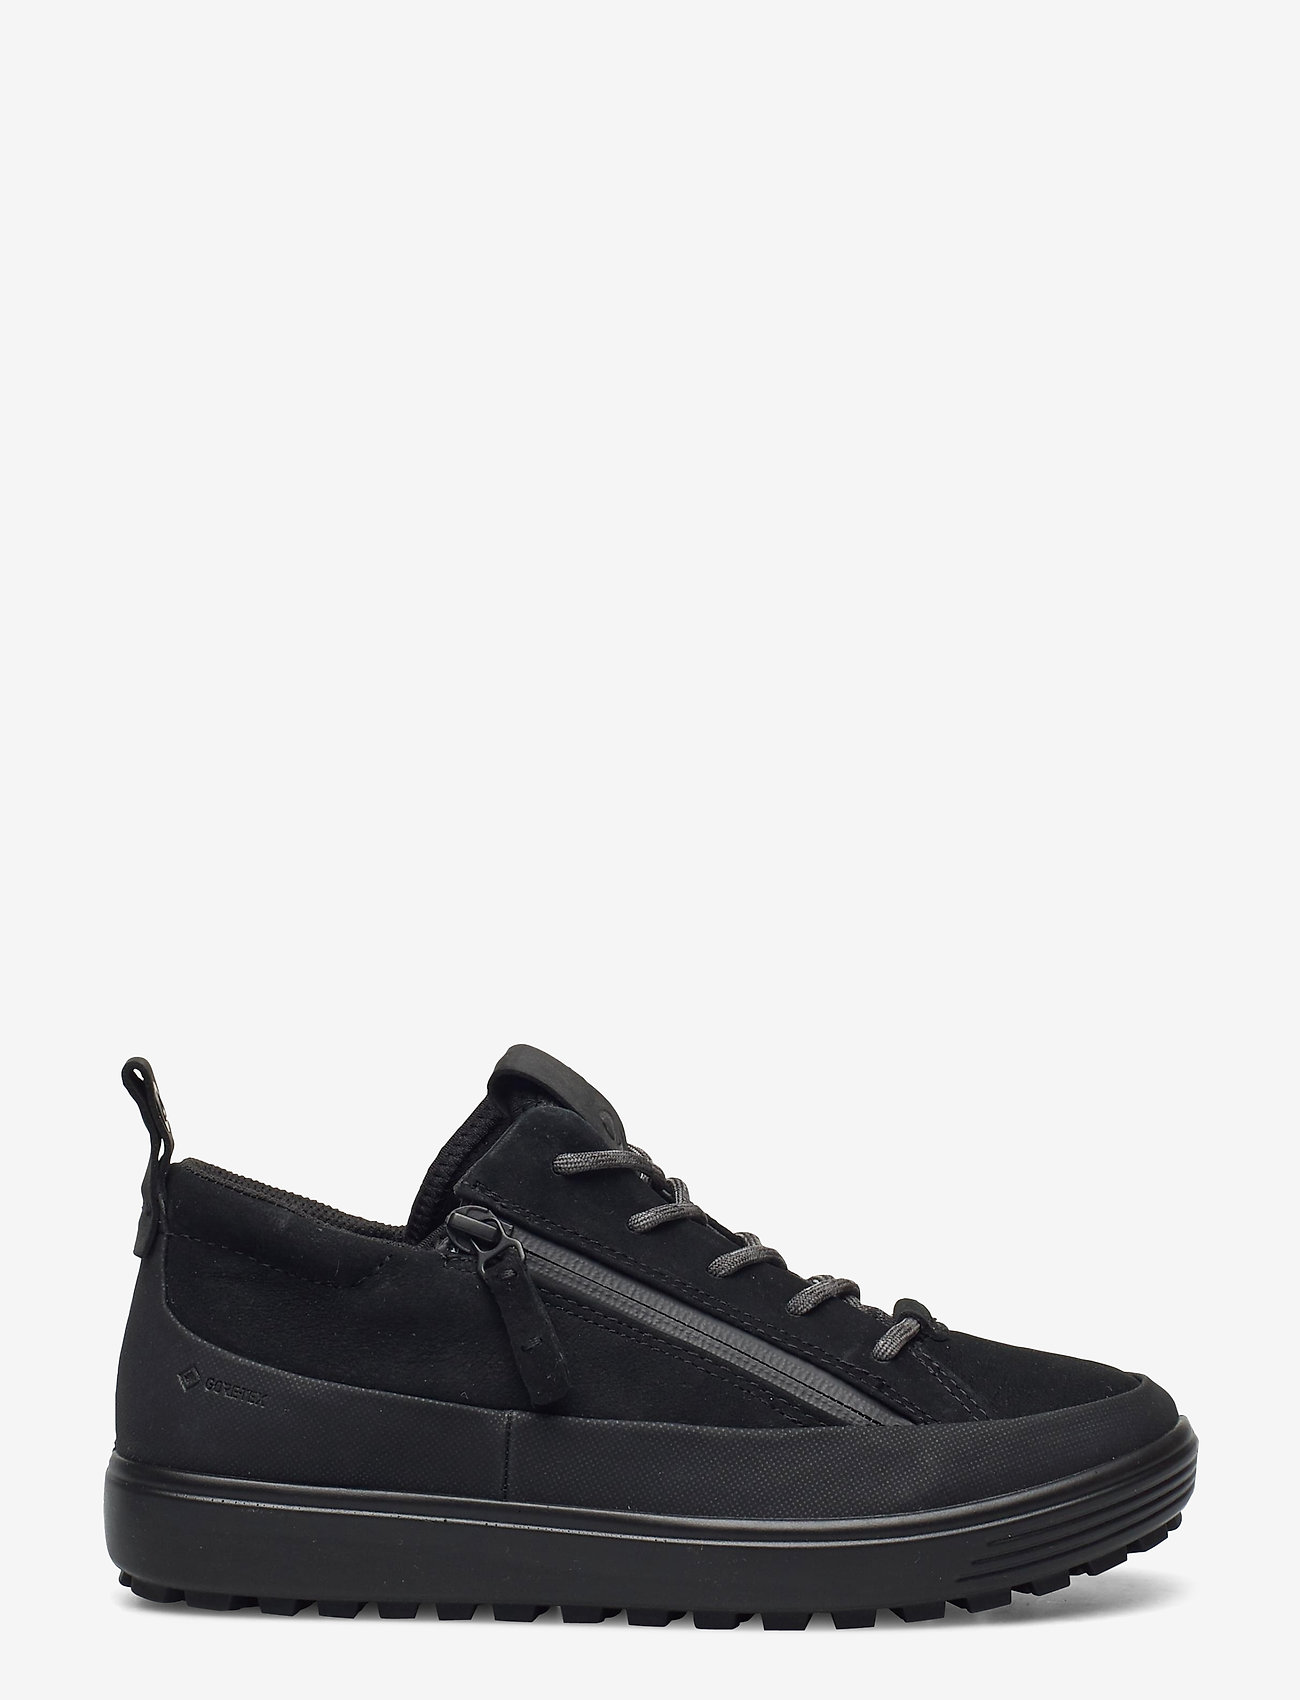 ECCO - SOFT 7 TRED W - lage sneakers - black - 1